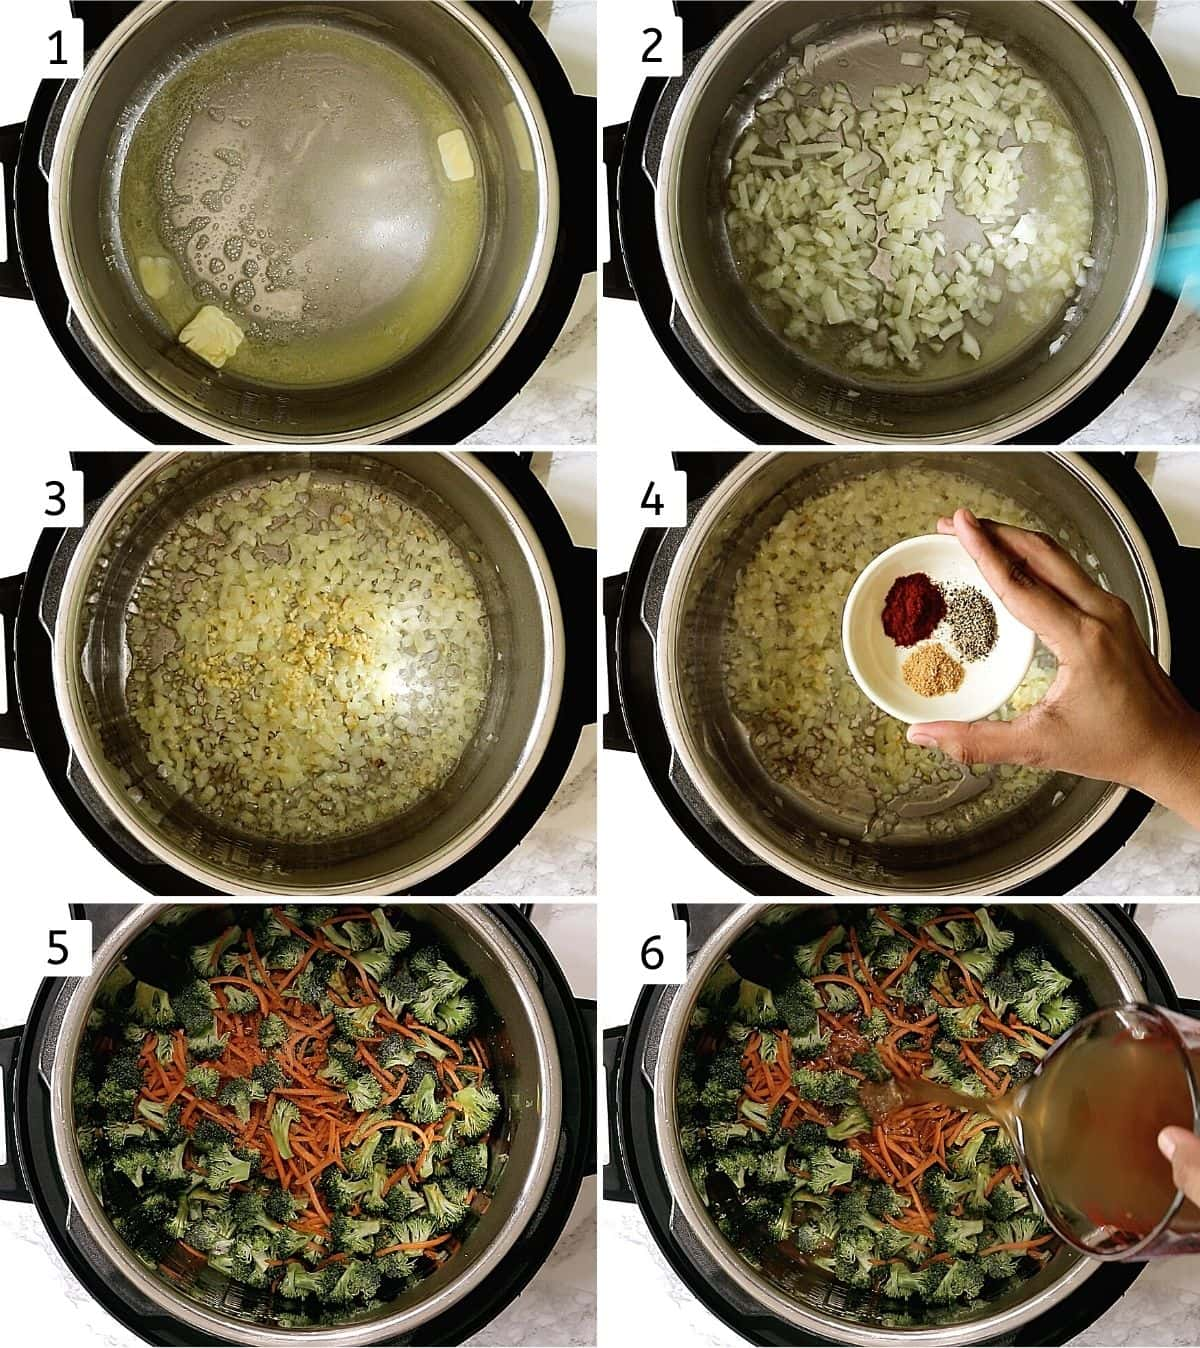 Collage of 6 steps showing melting butter, adding onion, adding garlic, adding spices, broccoli carrot added, adding stock.